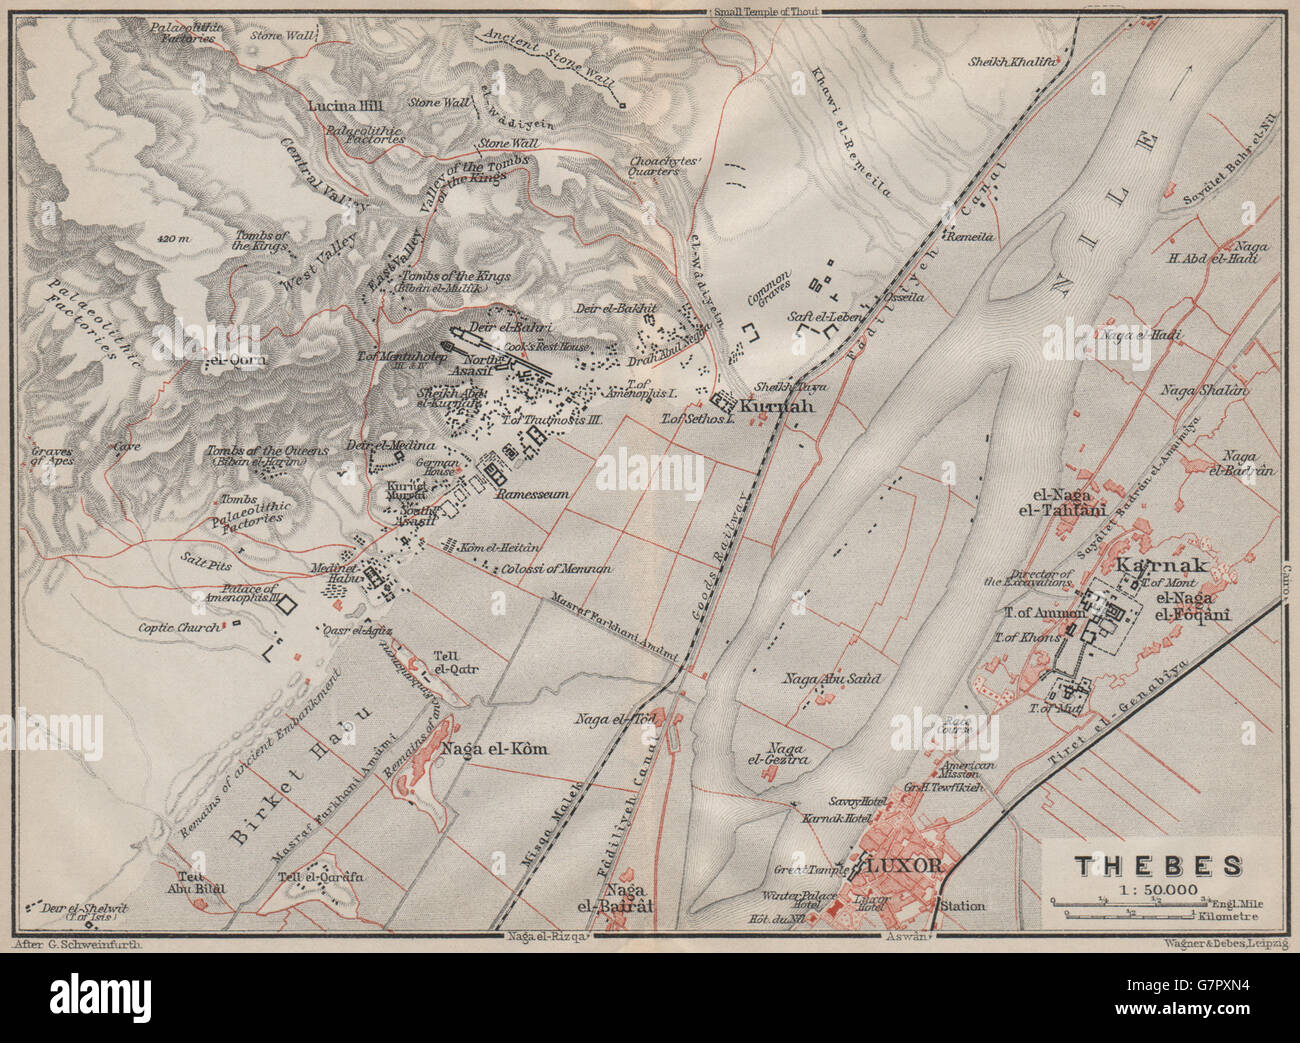 Thebes Map on